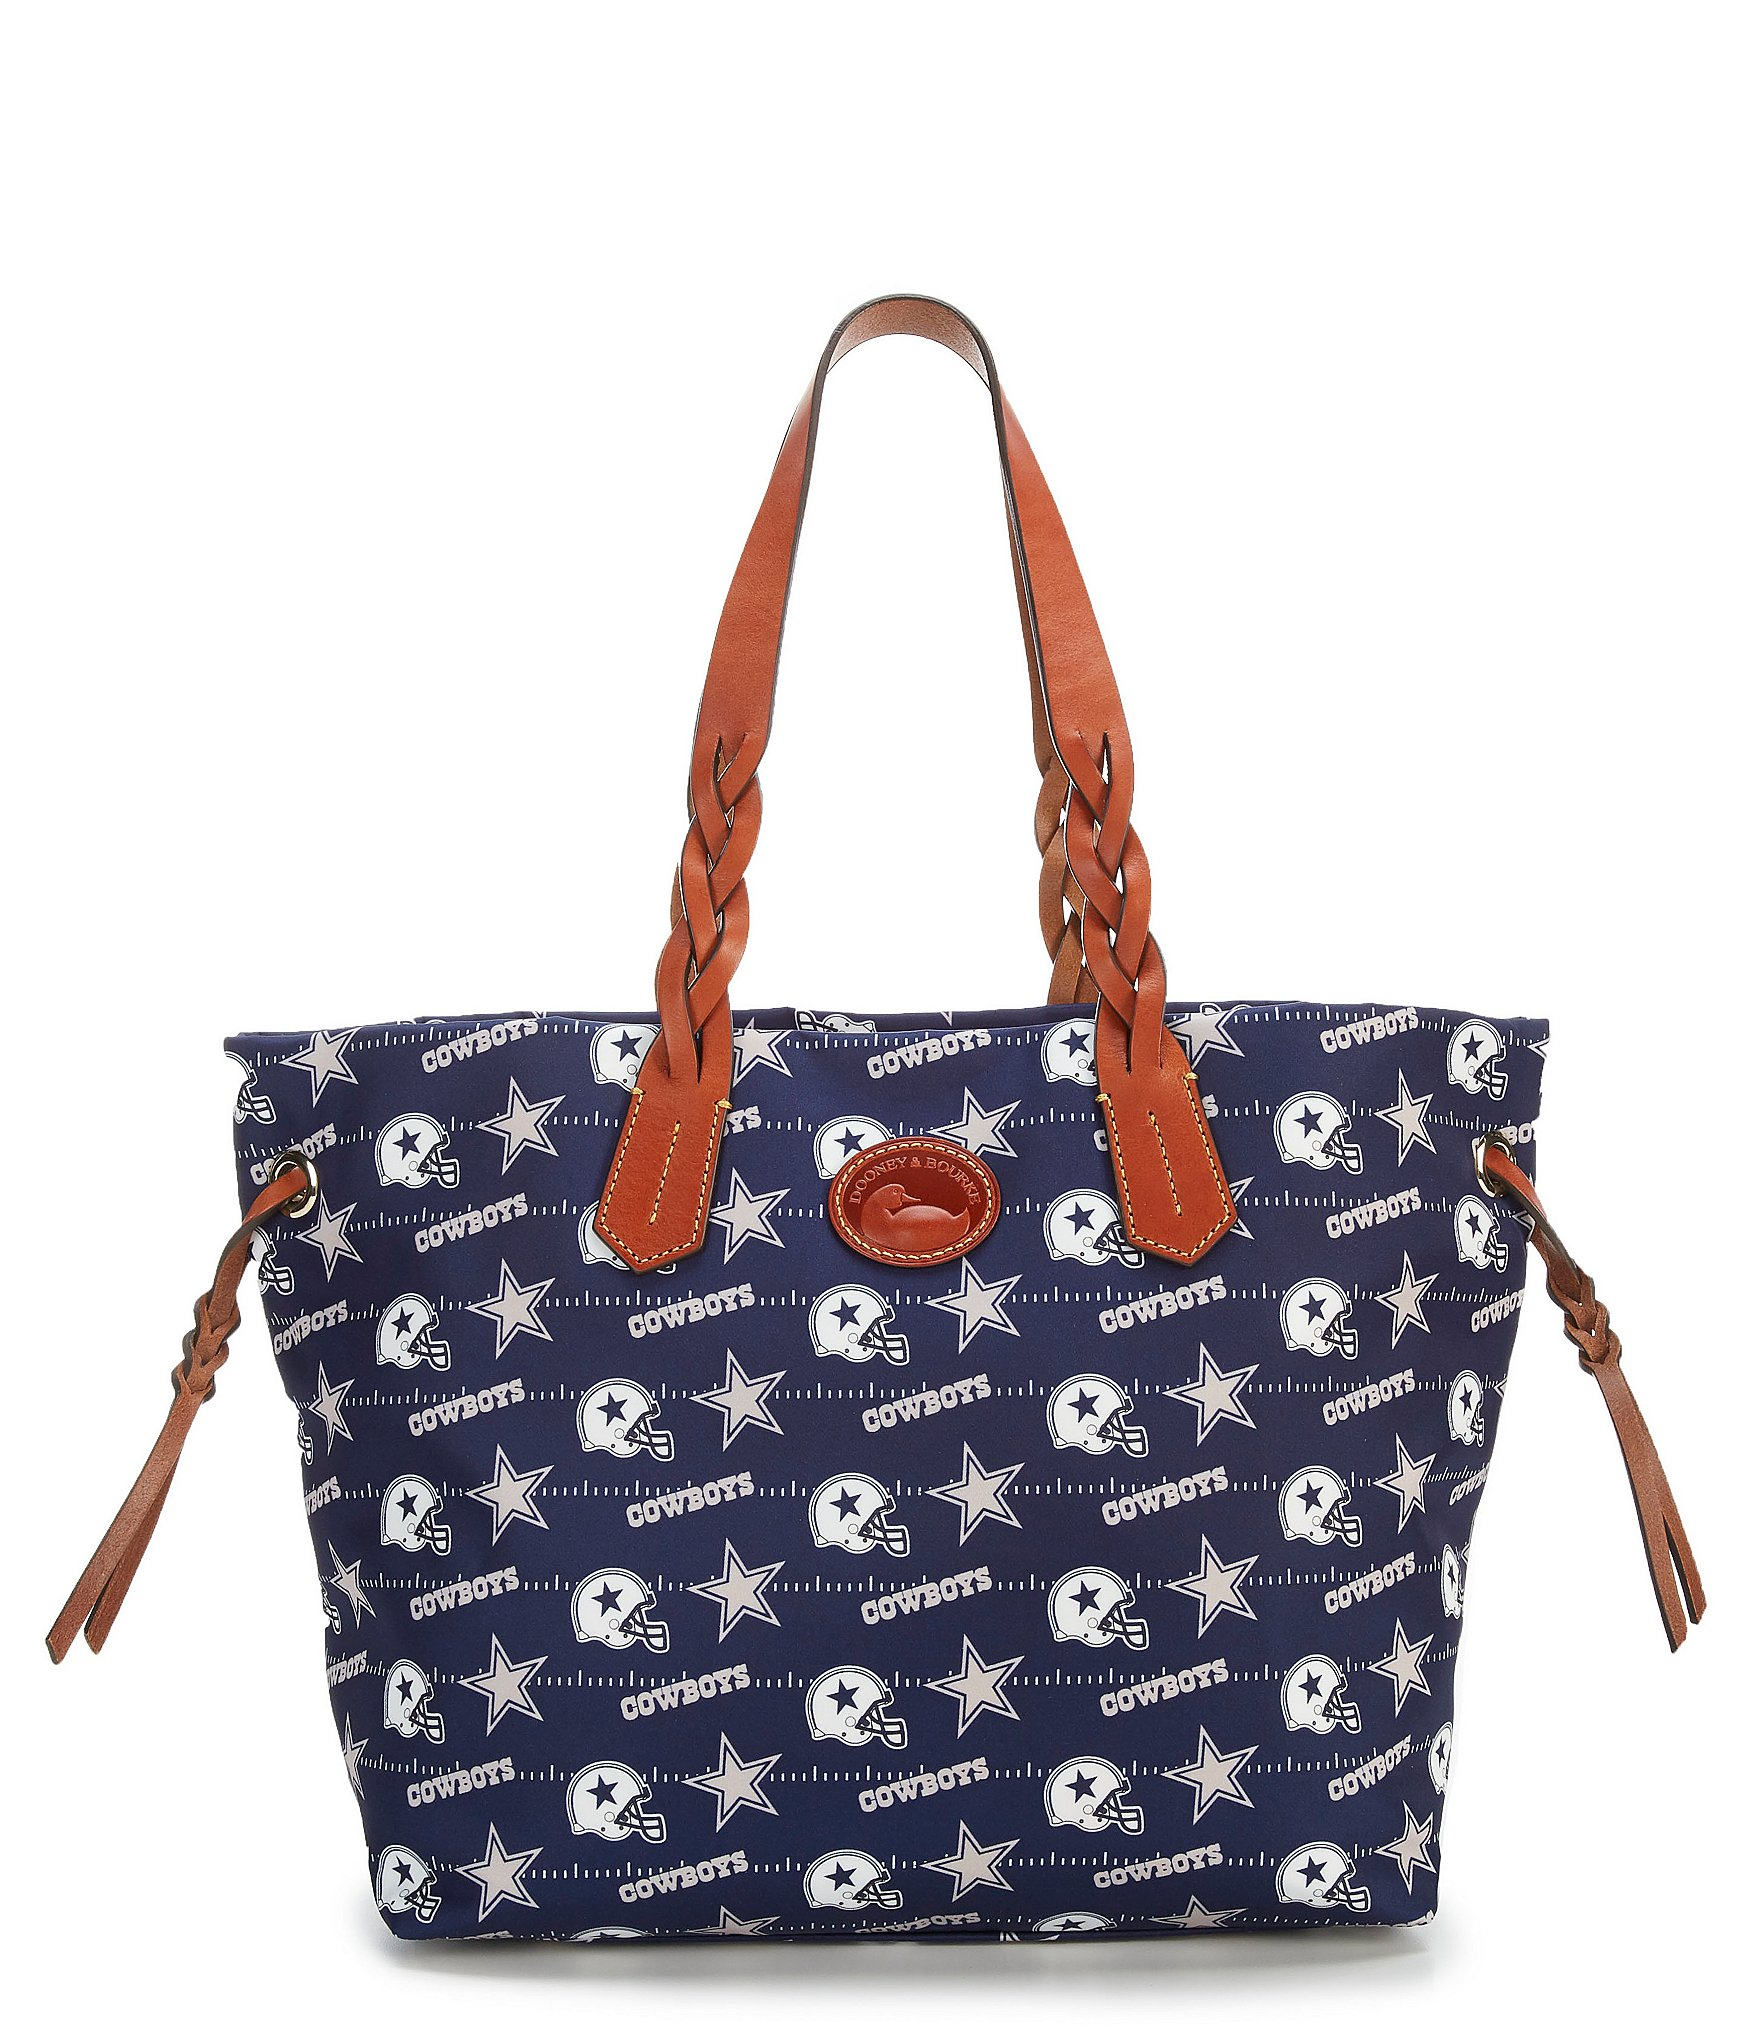 Disney Bag Dooney & Bourke's Disney Dogs Bag Is Back With an All-New Pattern $15 Disney and Disney Pixar Tees We Love From shopDisney's Black Friday Sale *adds to cart*.